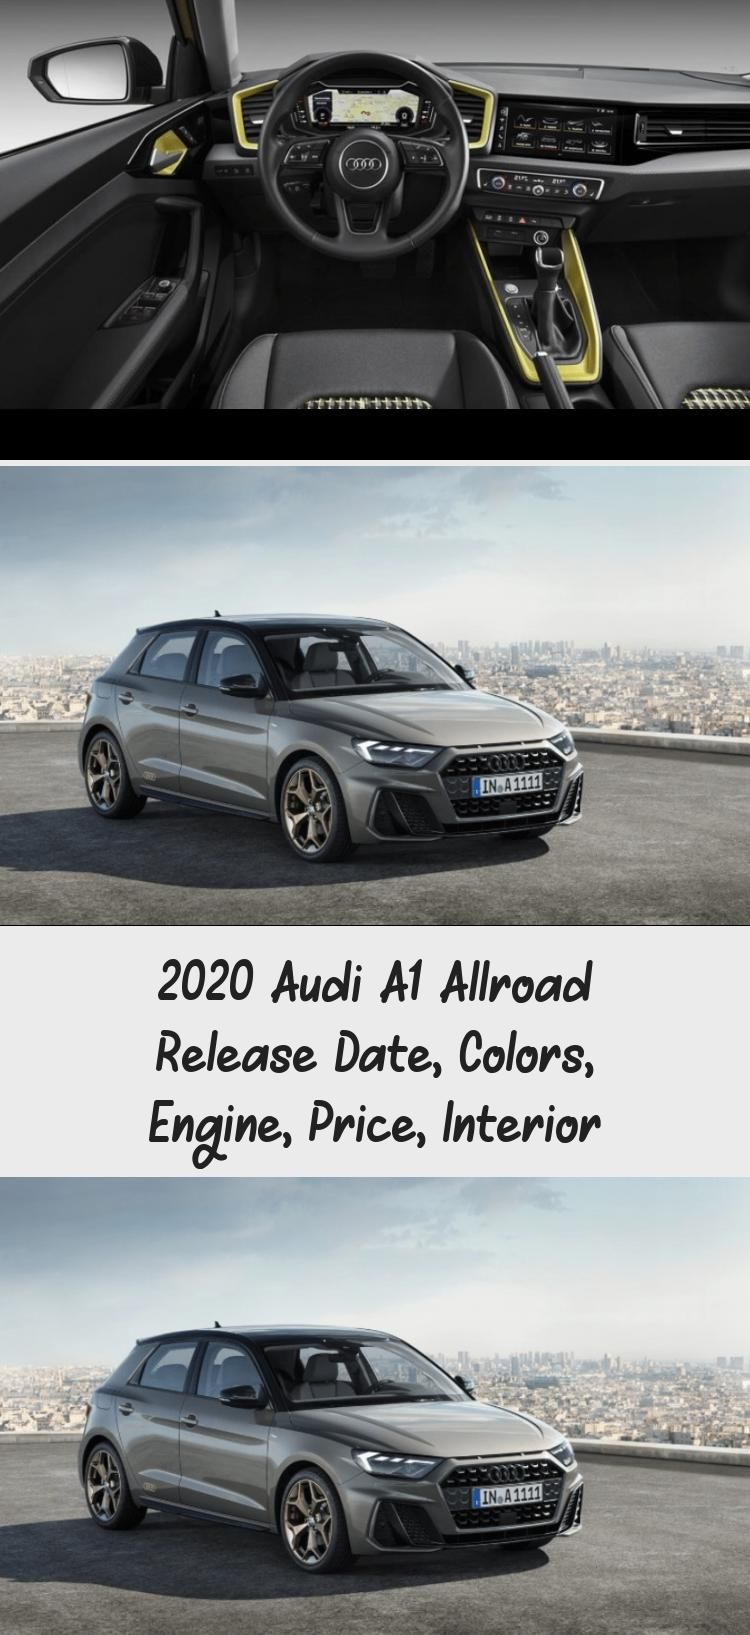 2020 Audi A1 Allroad Release Date, Colors, Engine, Price